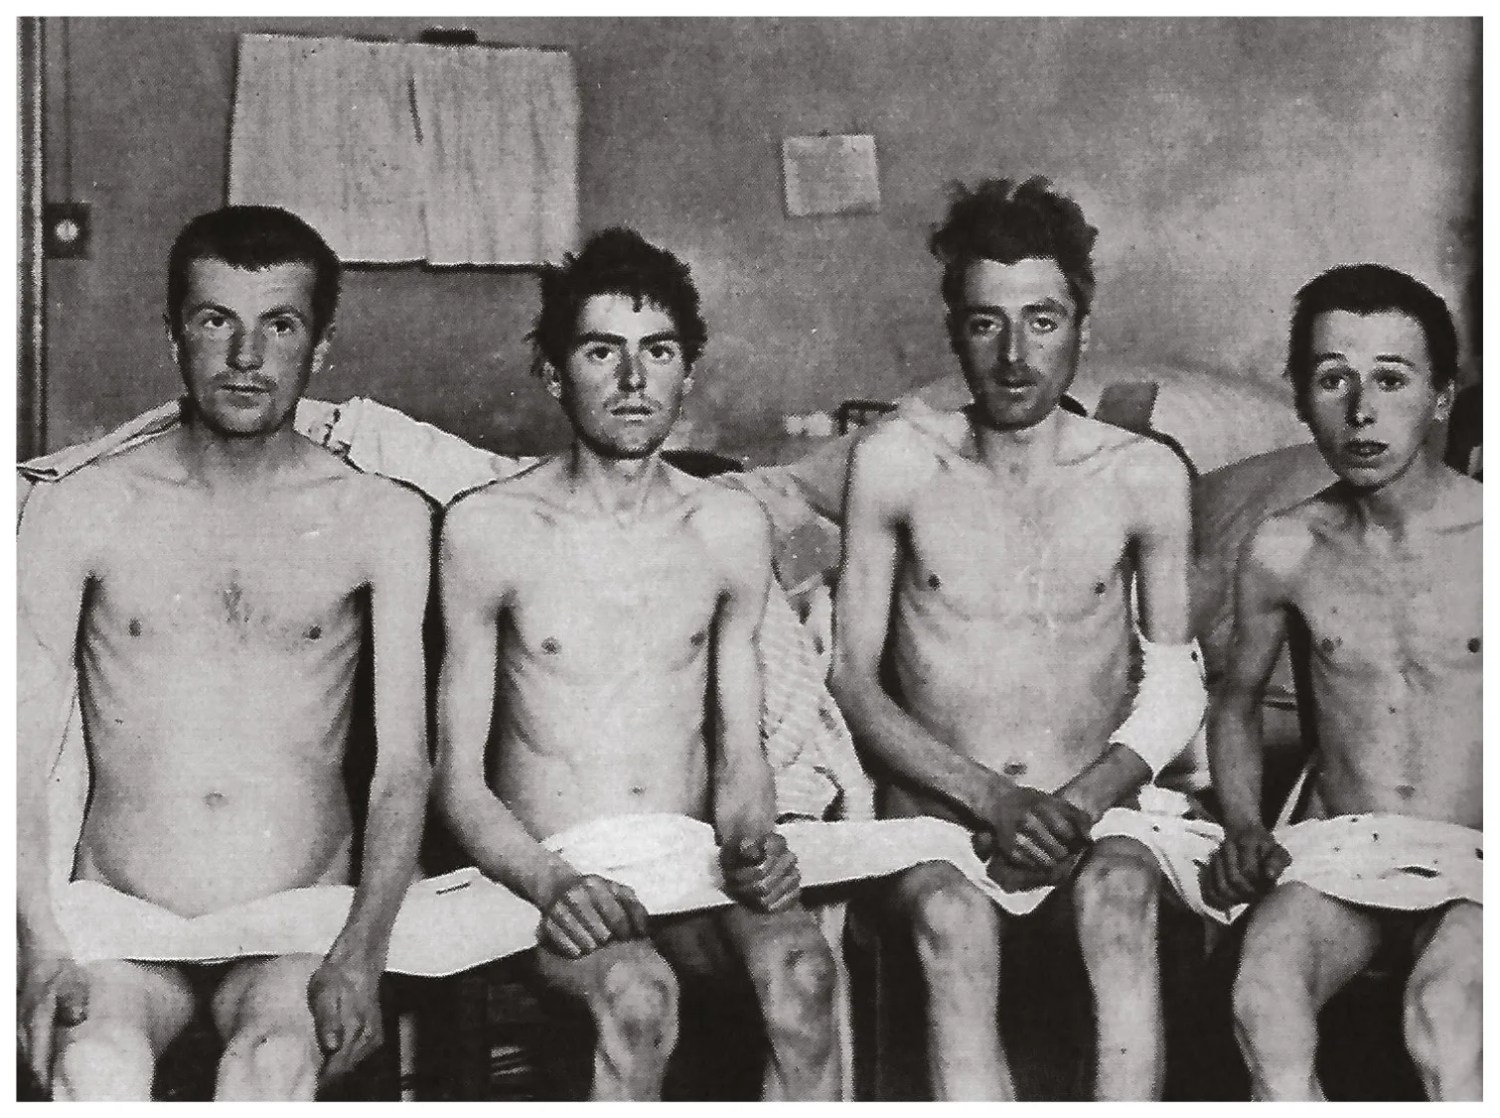 BELOW Malnourished and disease-ridden but alive. A group of former British POWs photographed after release at the Armistice.